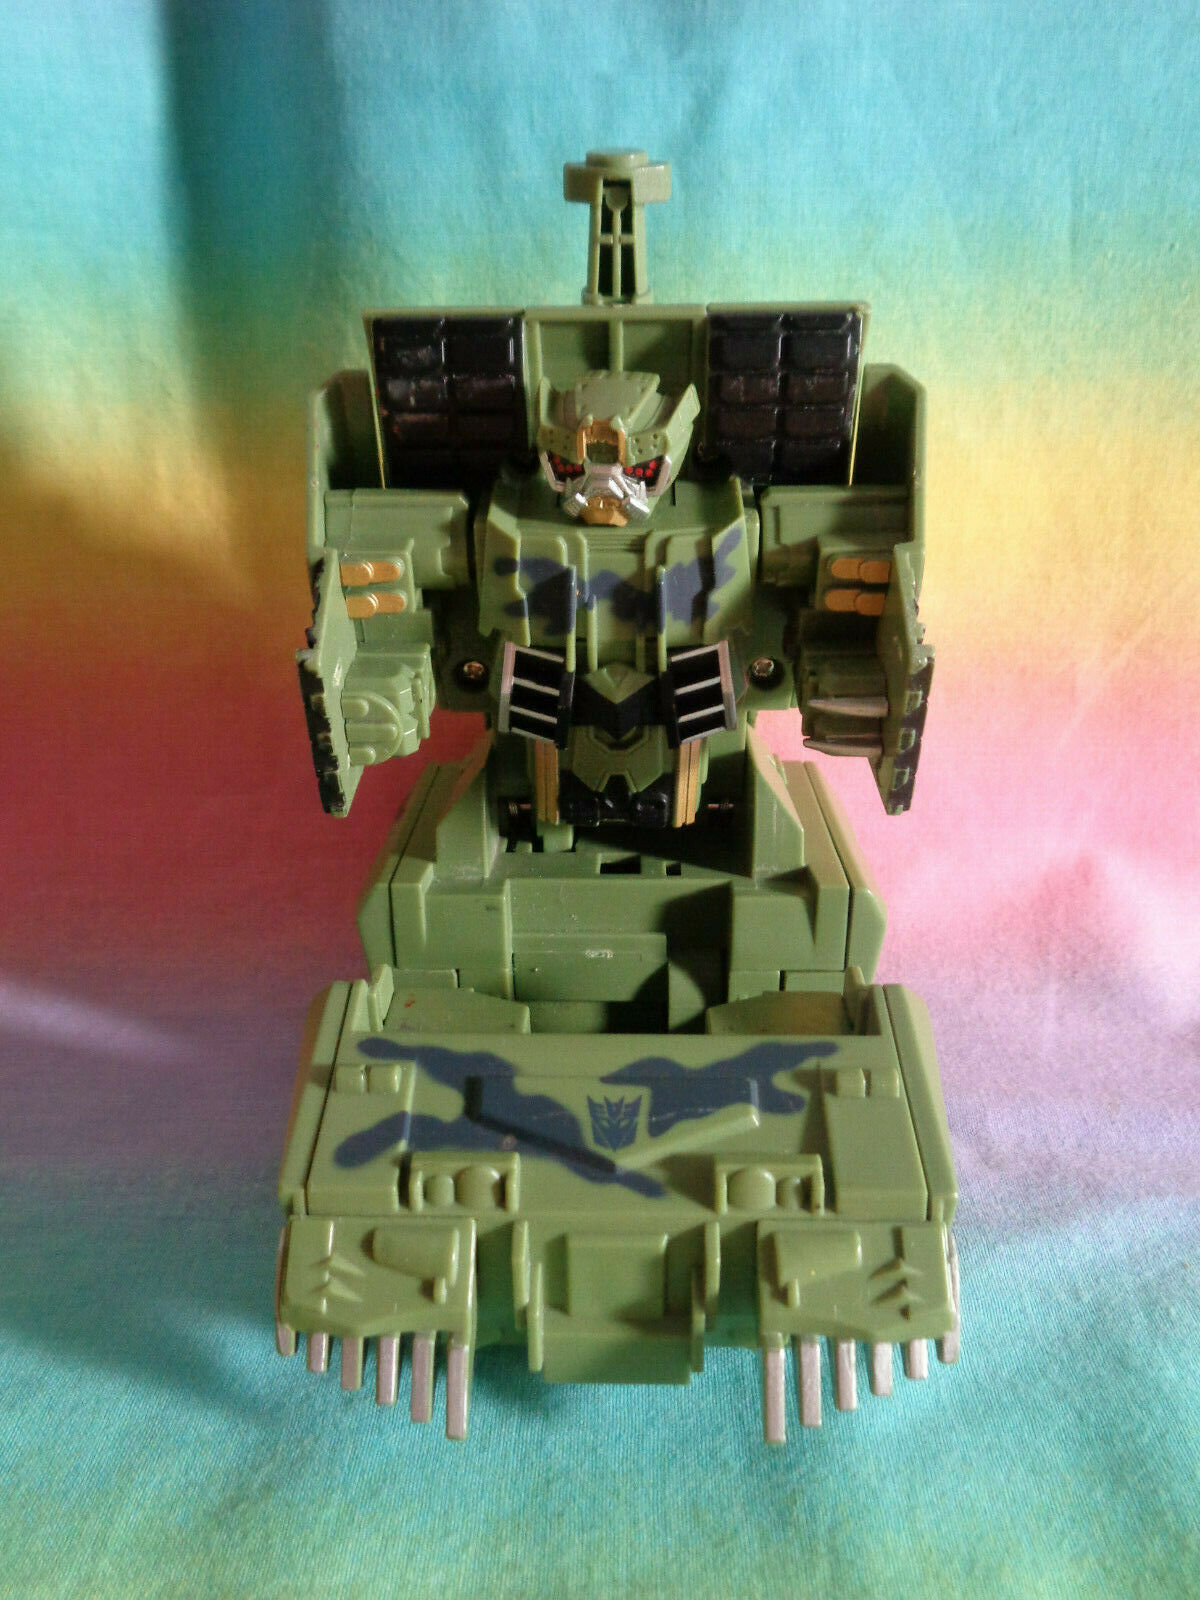 Transformers 2008 Hasbro Green Army Tank Replacement Parts - as is image 6